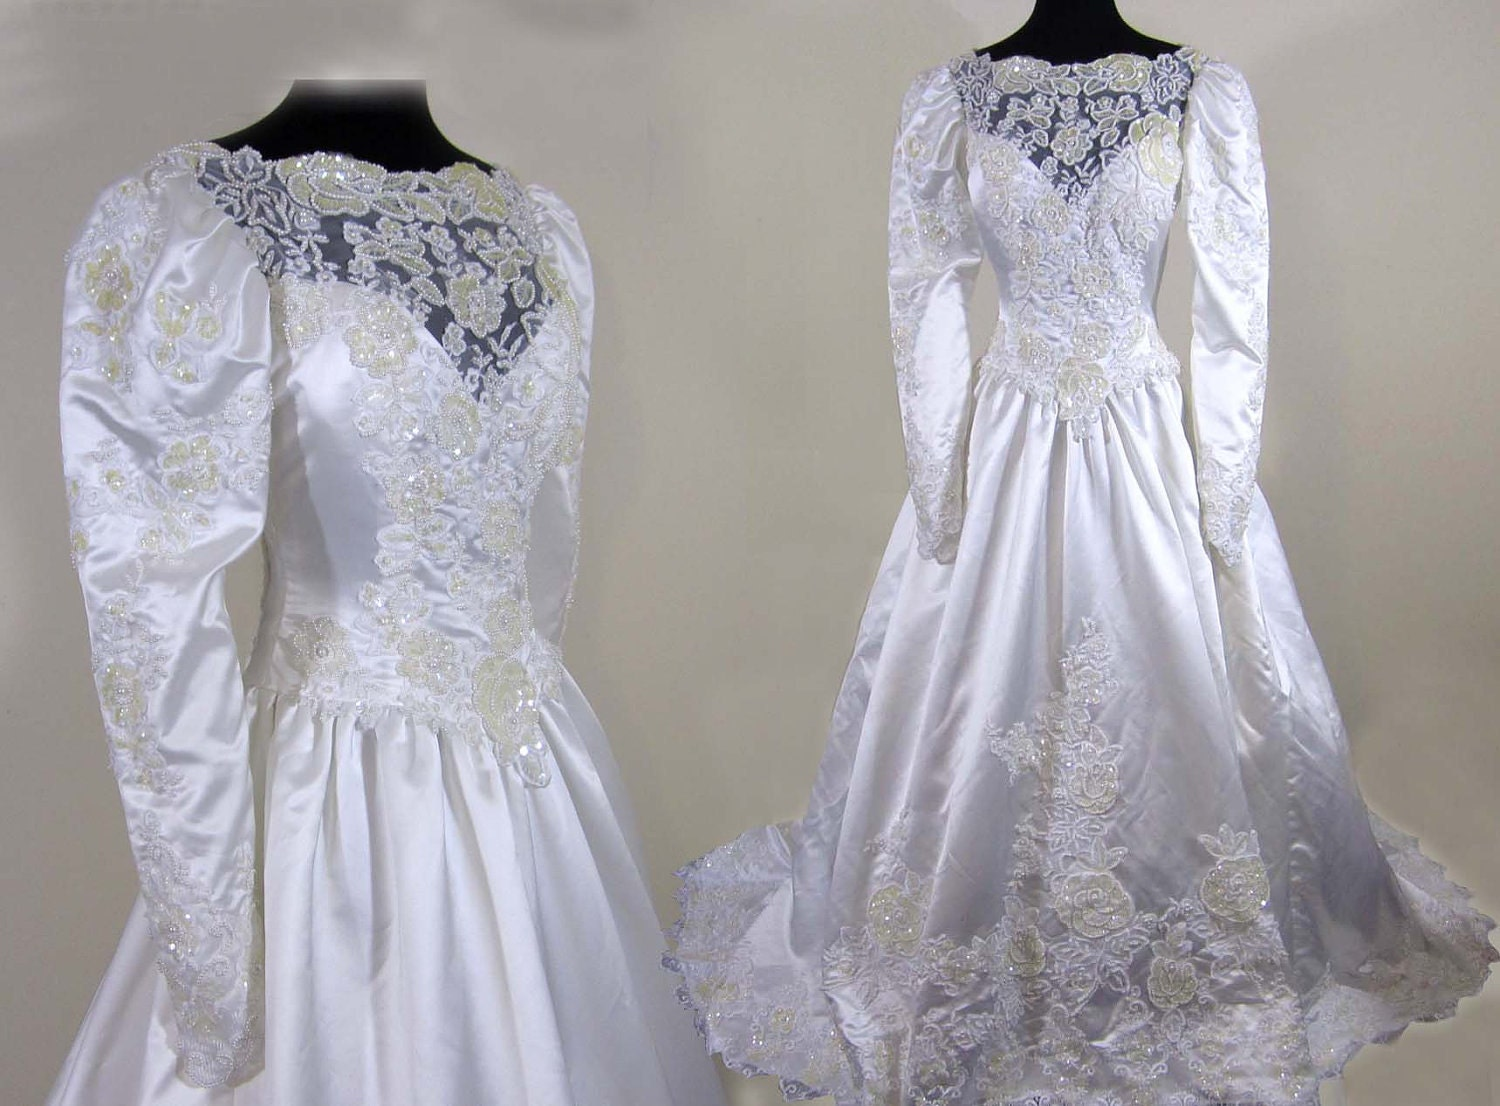 Sale 1980s satin wedding bridal gown exquisite beading for Wedding dresses for sale by owner